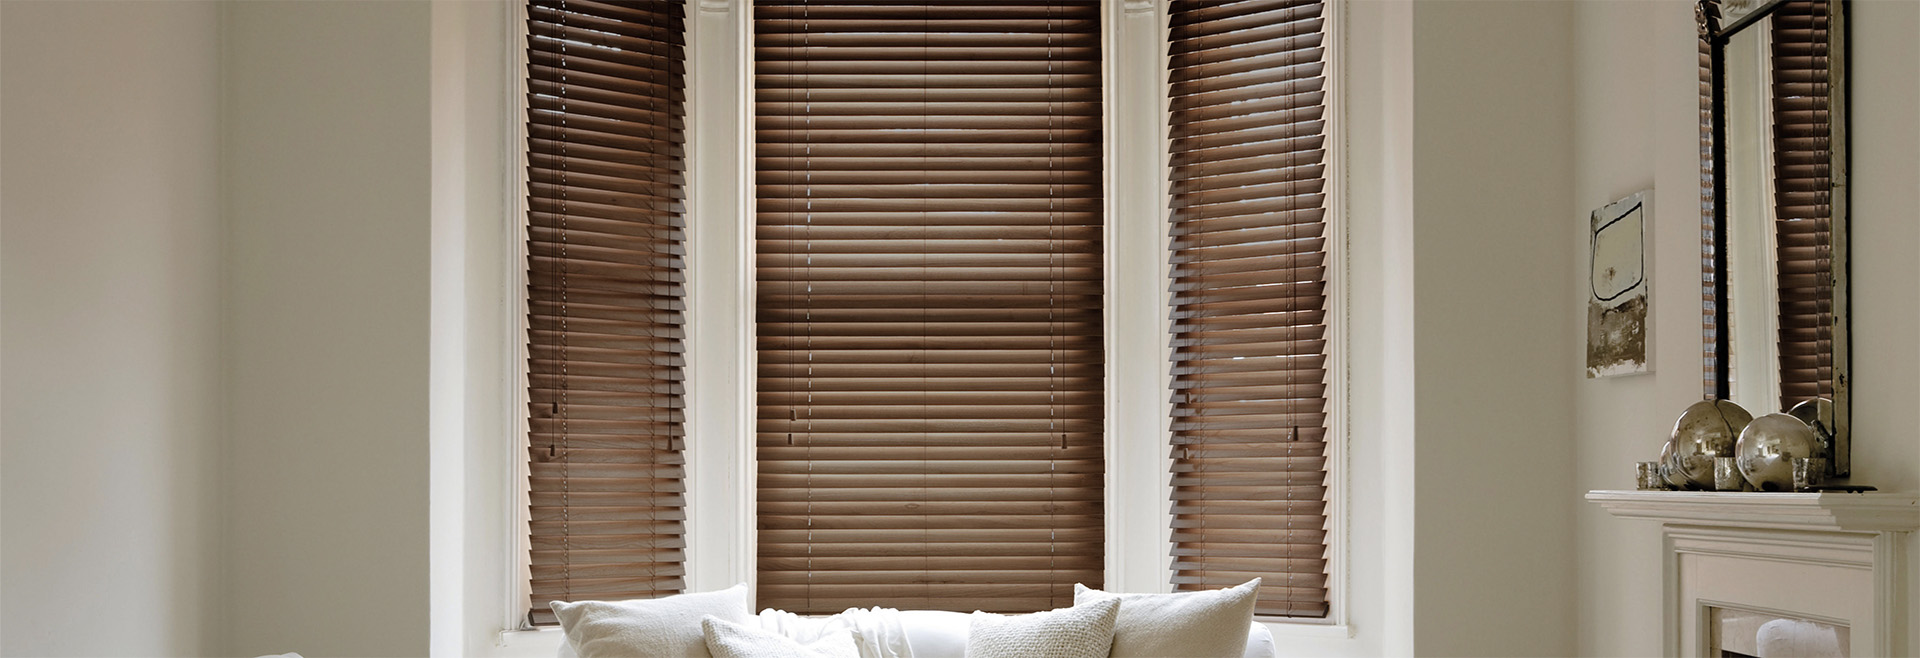 fitted-window-blinds